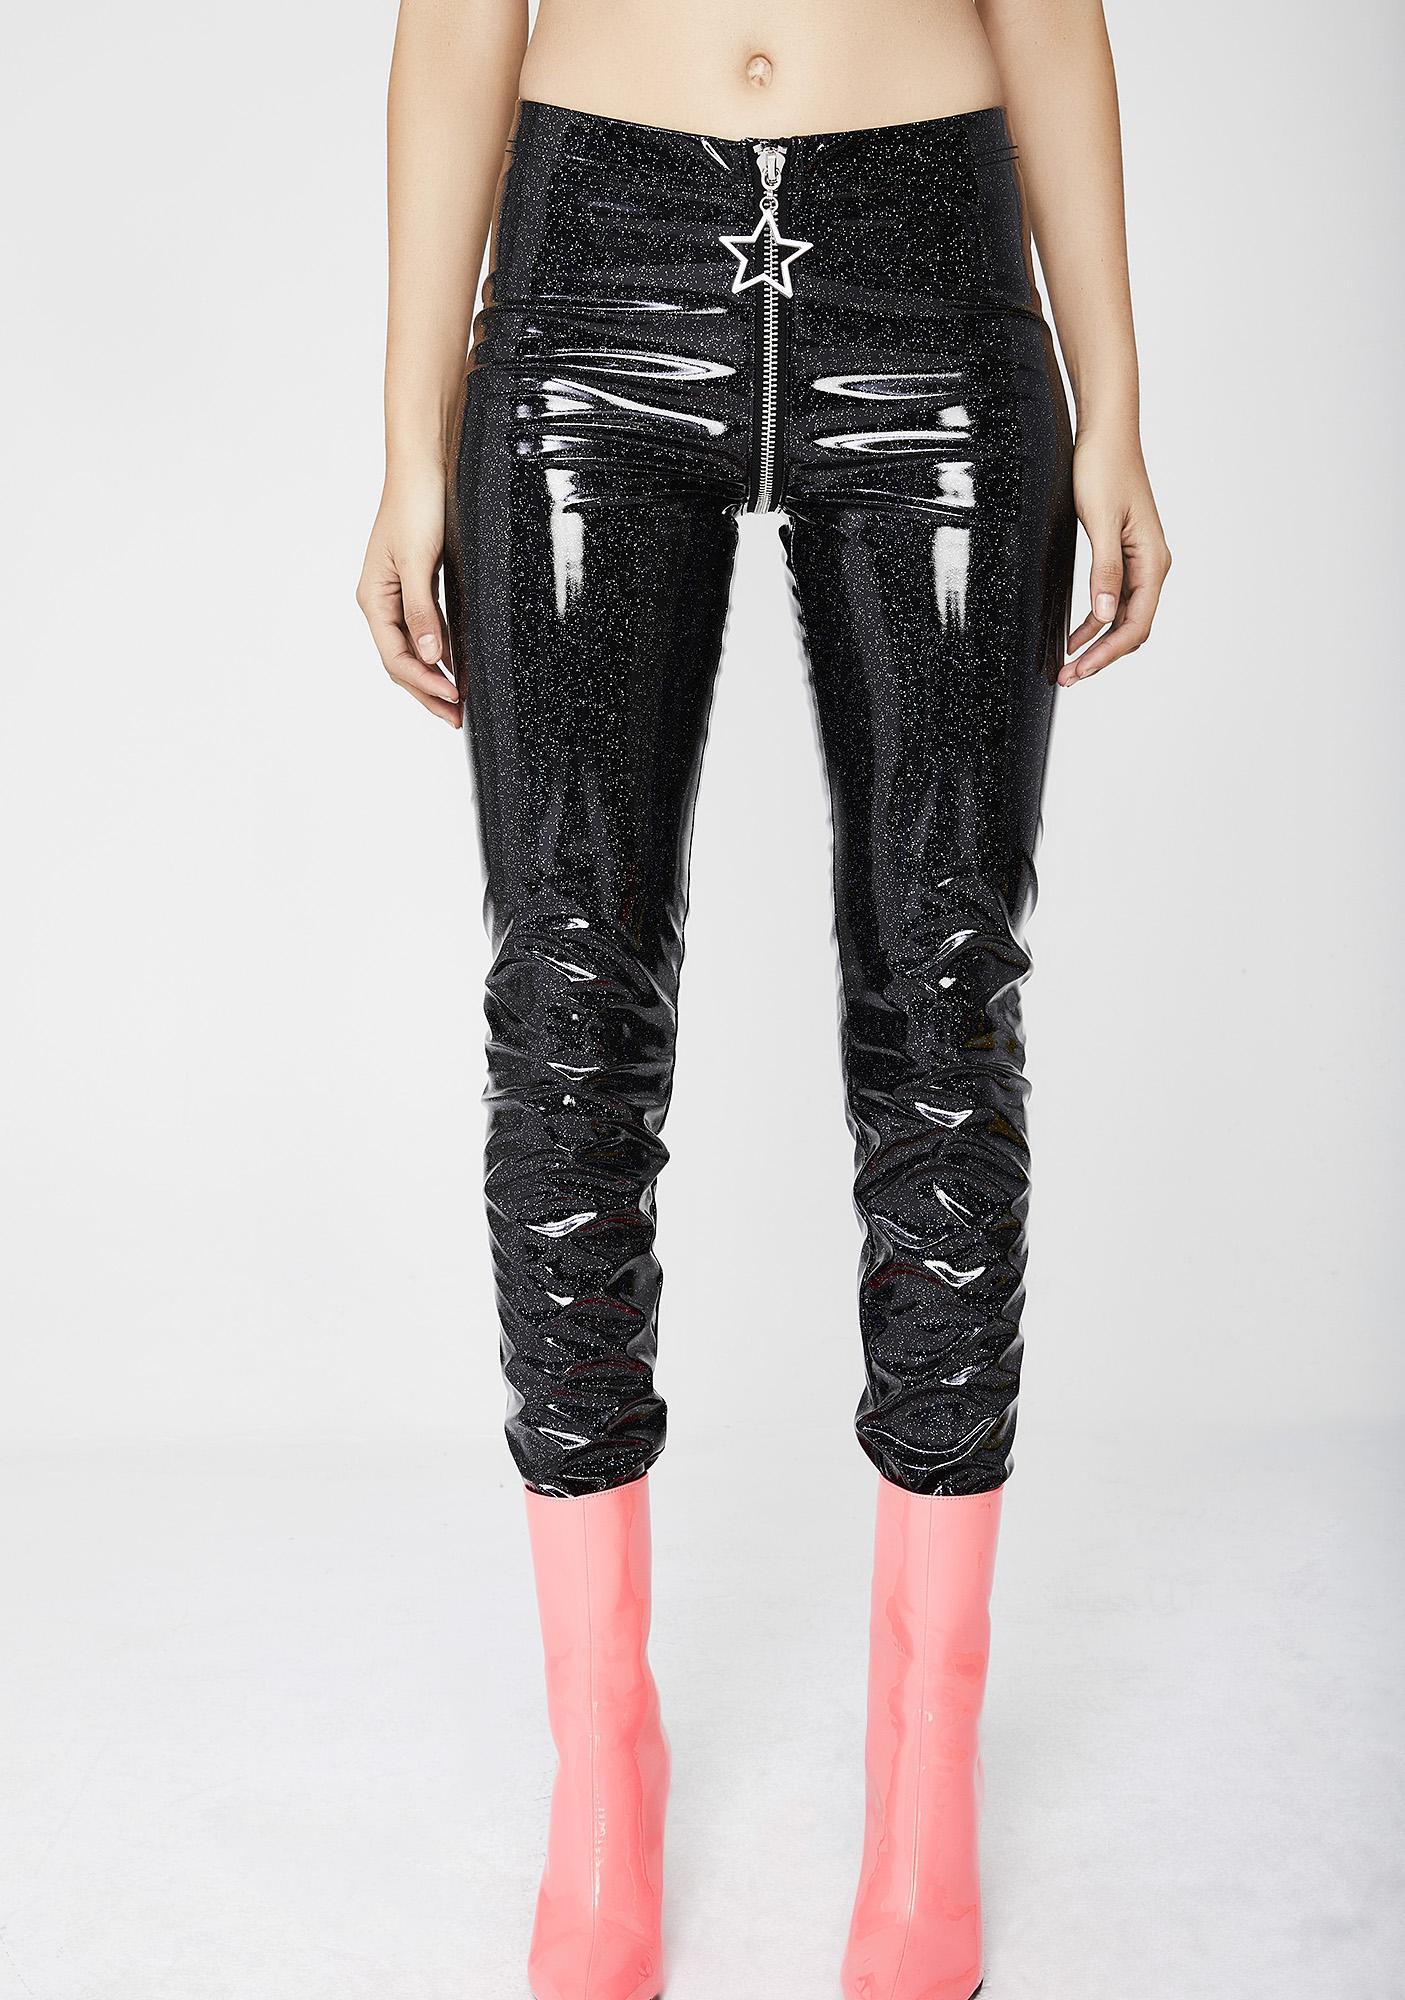 Current Mood Stardust Glitter Vinyl Leggings